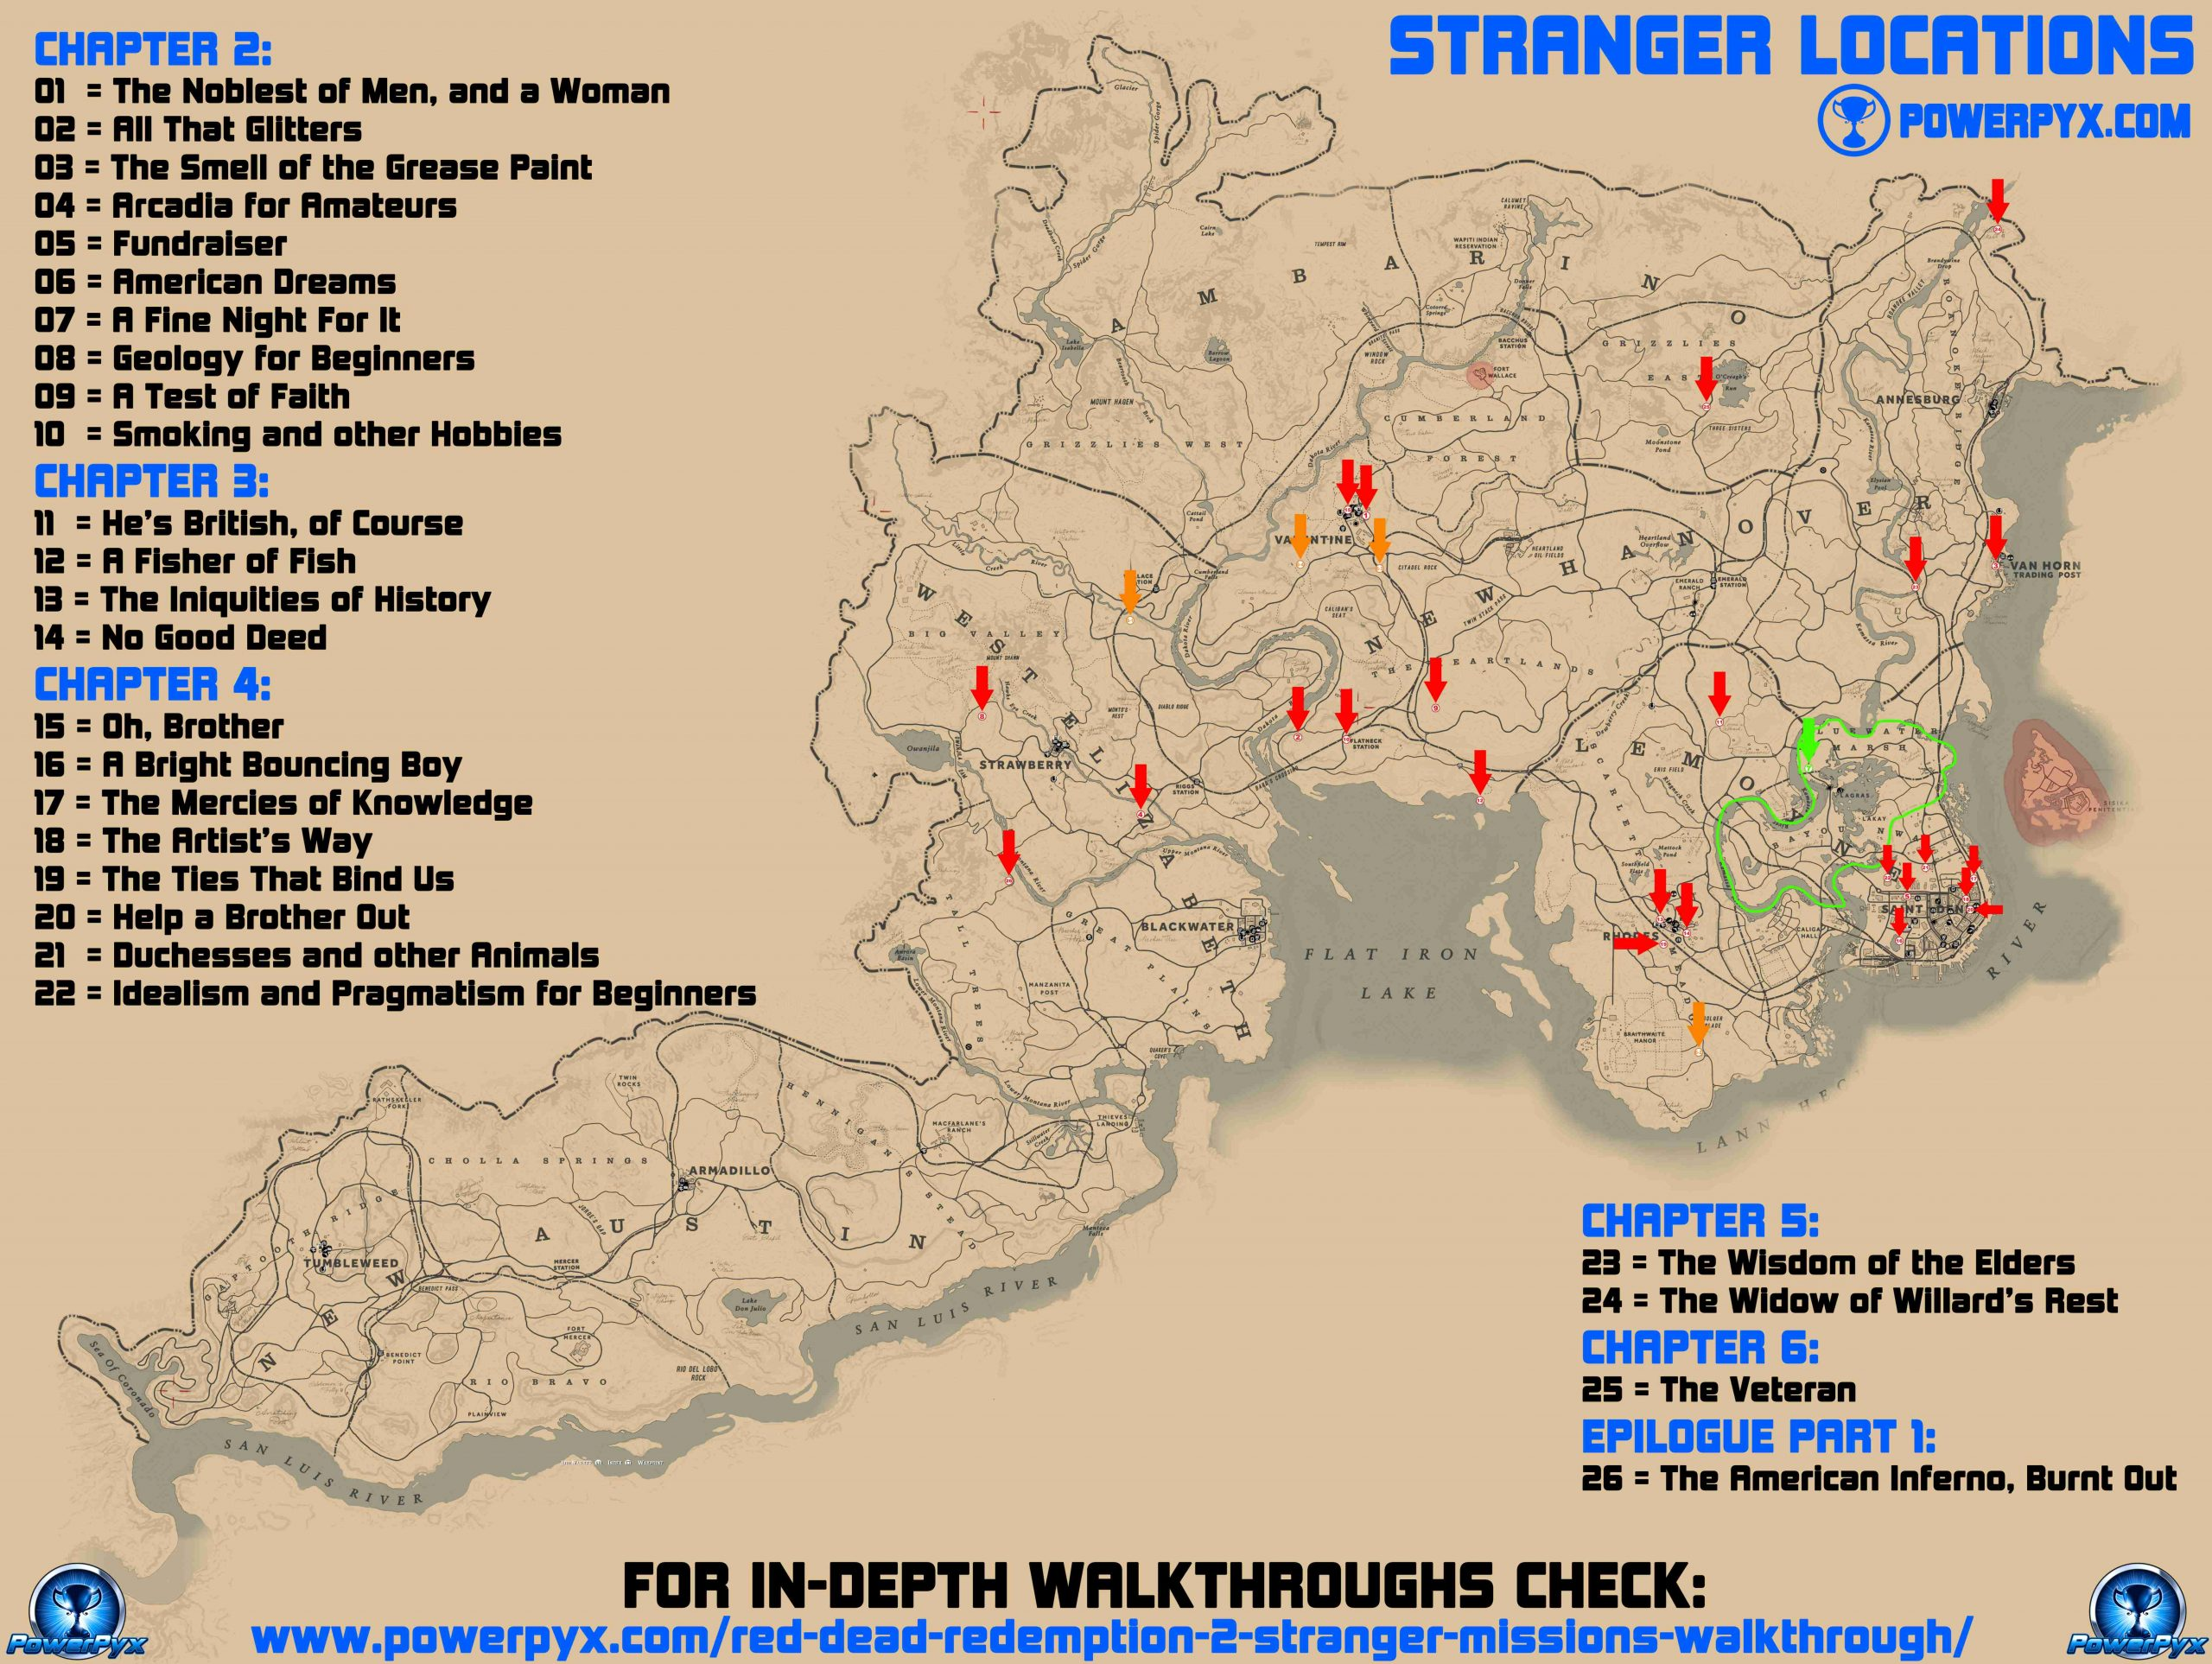 red dead redemption 2 stranger locations map scaled - Red Dead Redemption 2 - Guida ai trofei e obiettivi